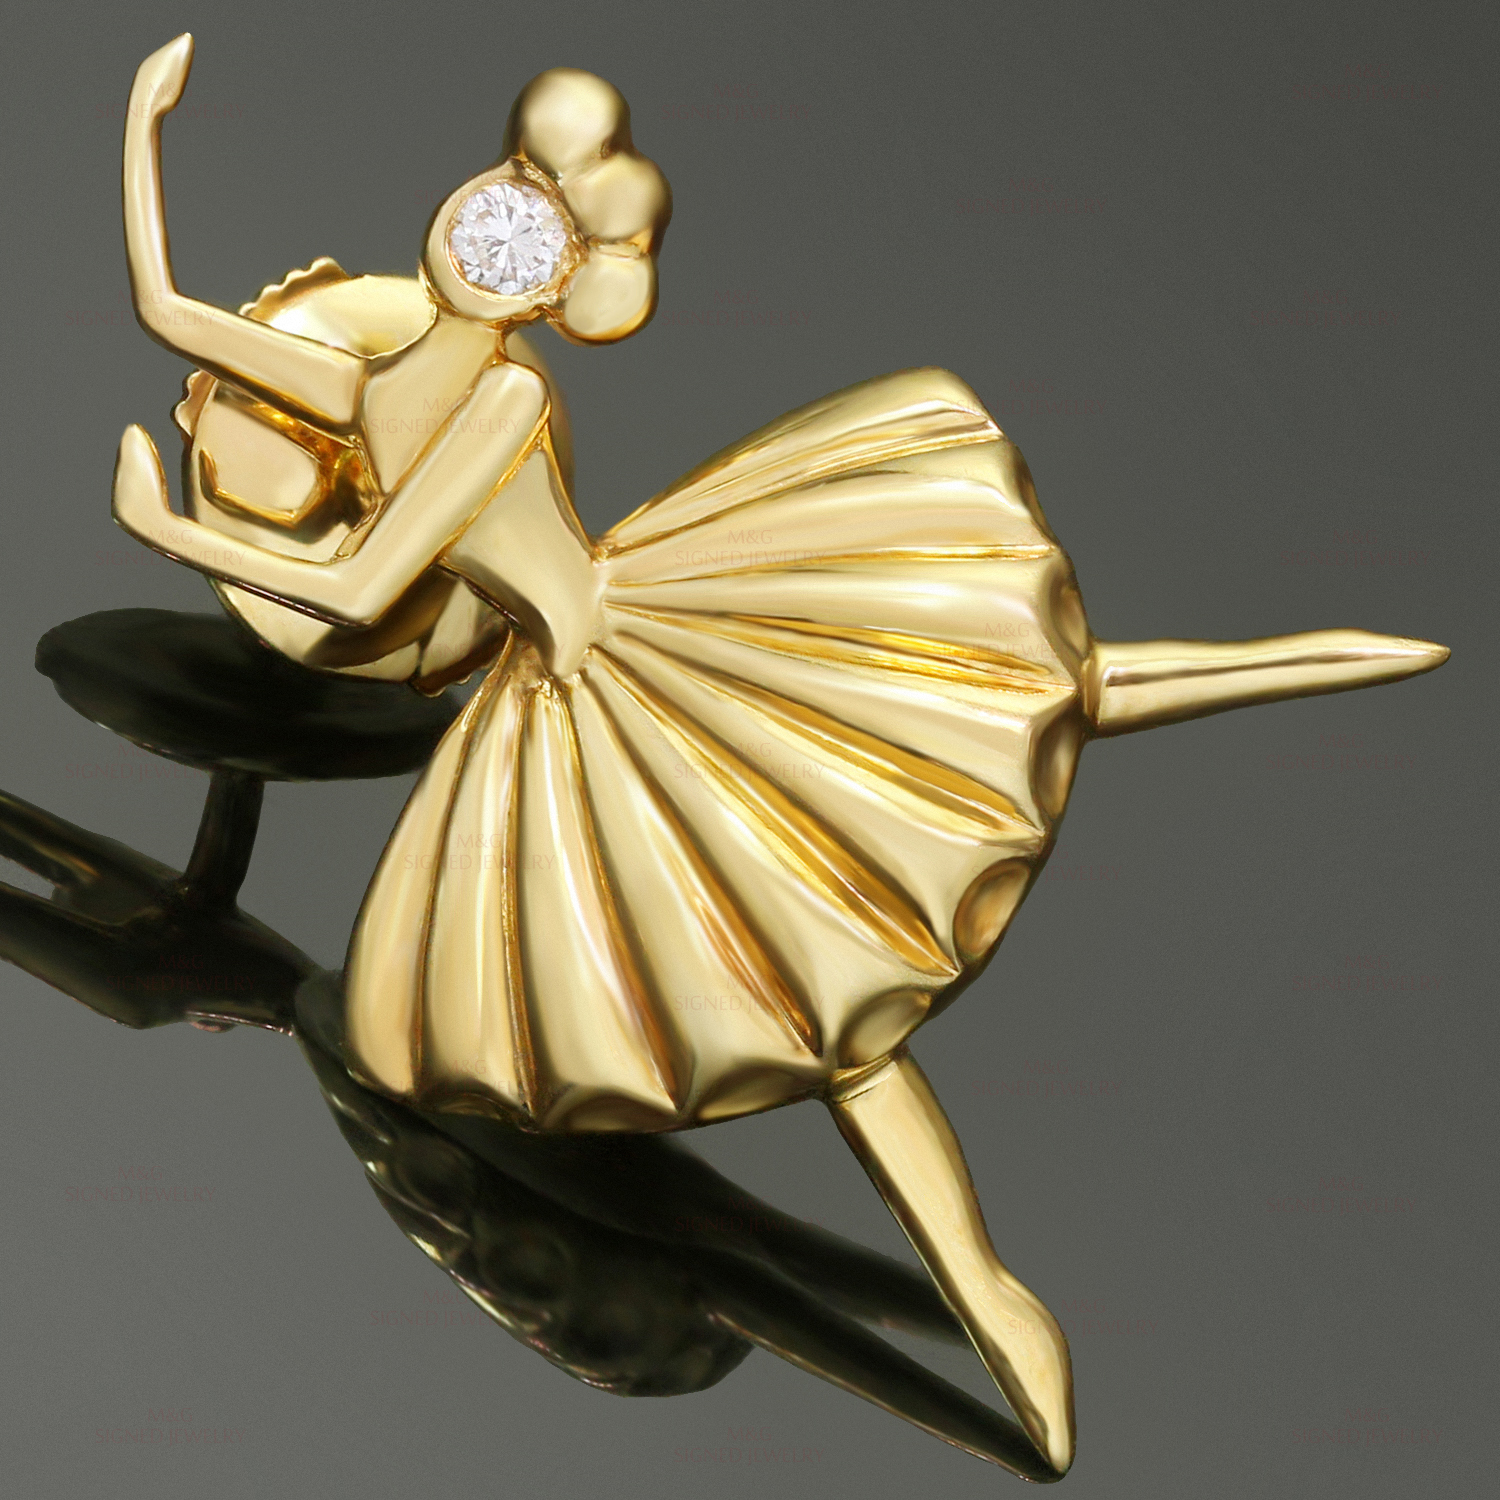 VAN CLEEF & ARPELS Diamond 18k Yellow Gold Ballerina Pin Brooch